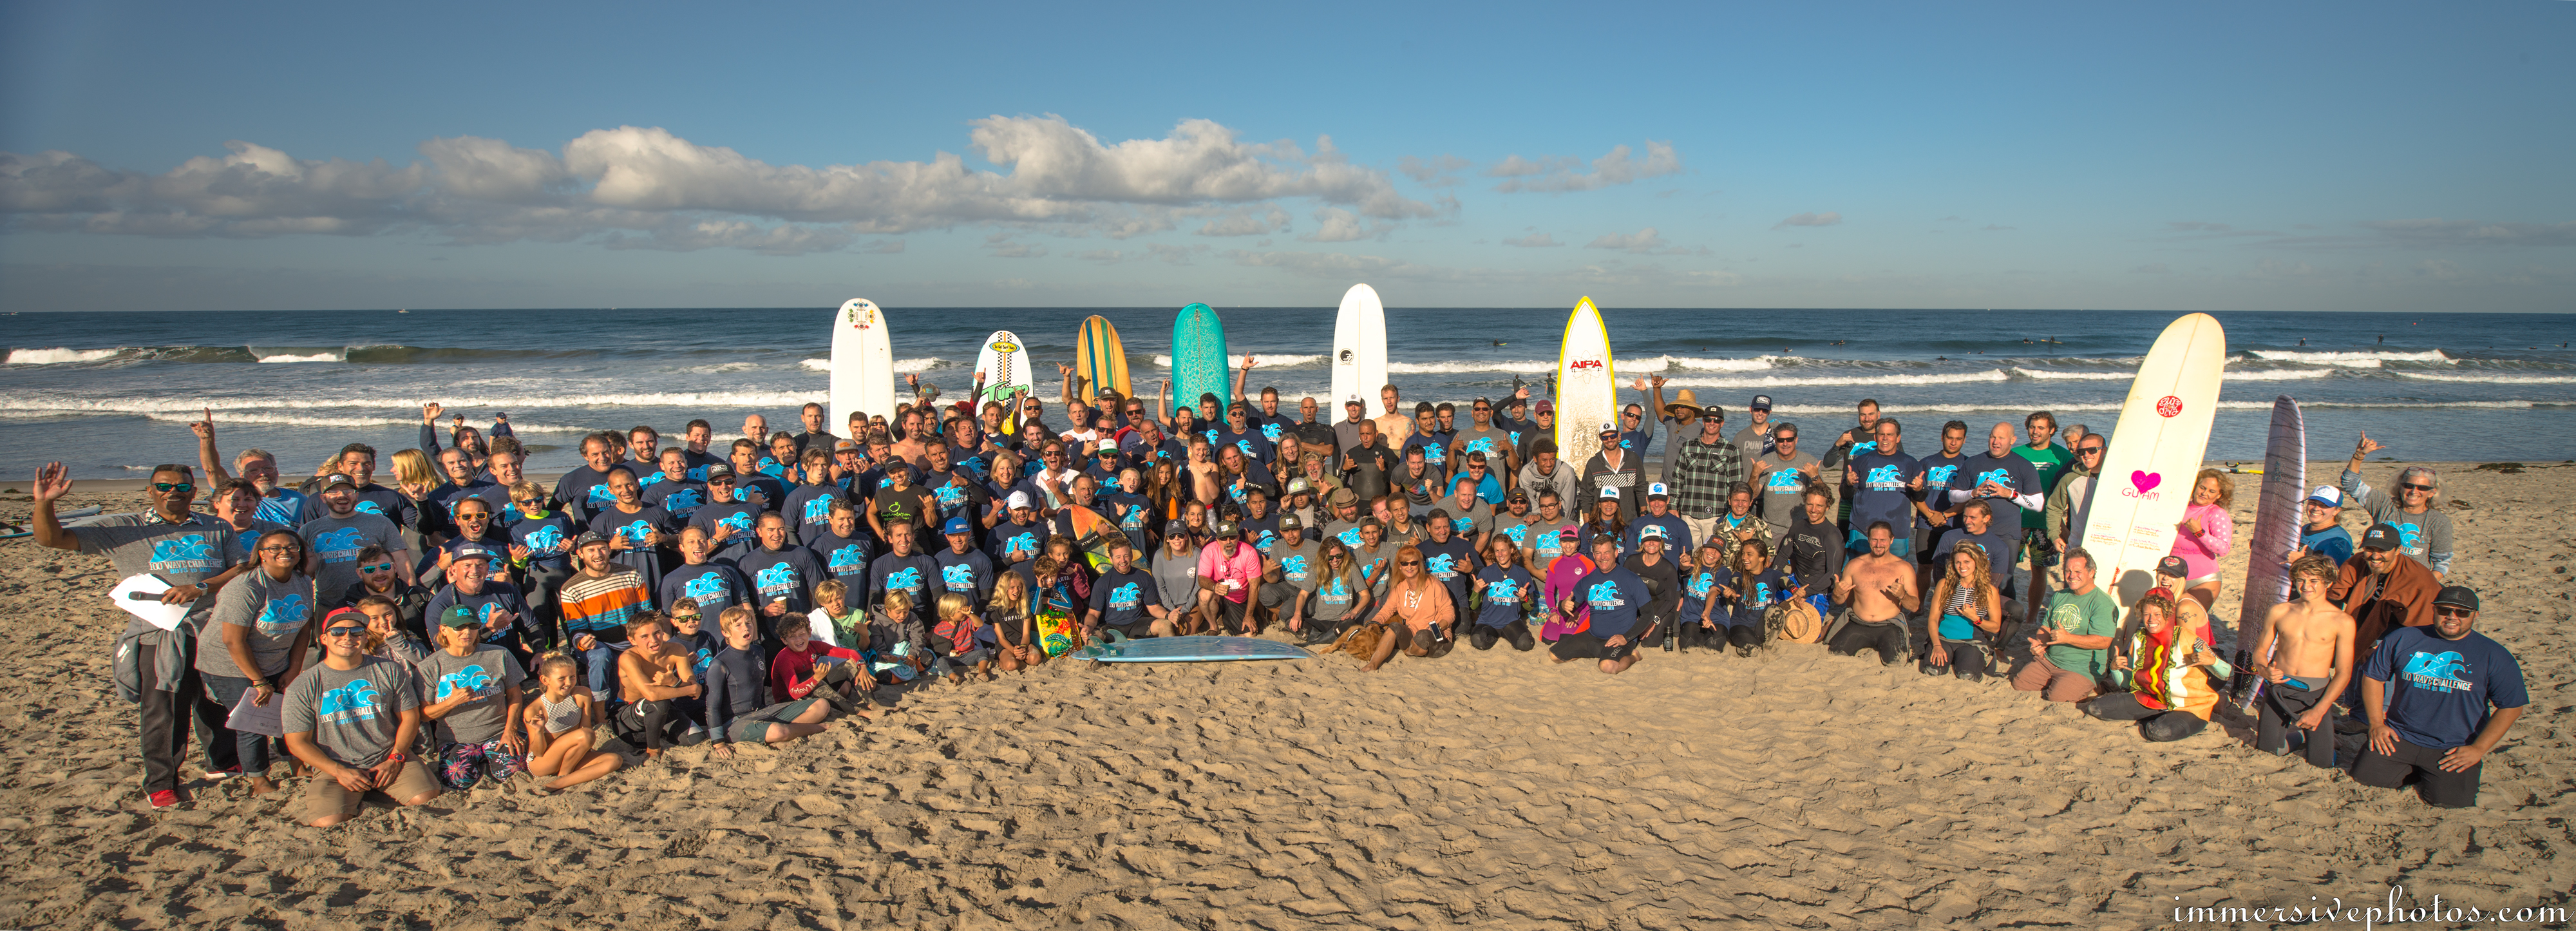 8th Annual 100 Wave Challenge Group Photo